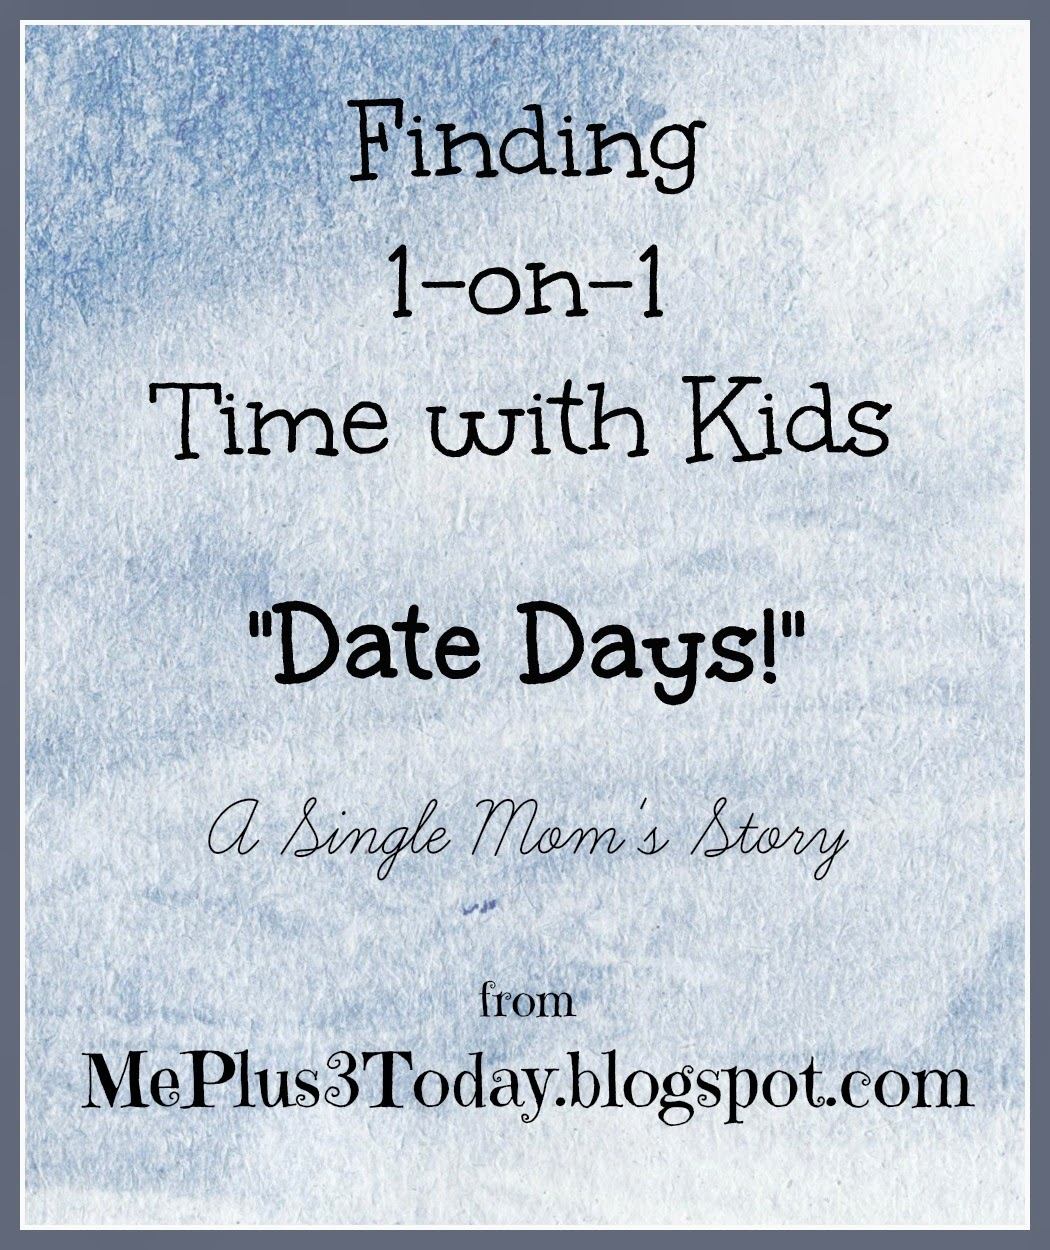 Finding 1-on-1 Time with Kids - Date Days! A single mom's story - MePlus3Today.blogspot.com